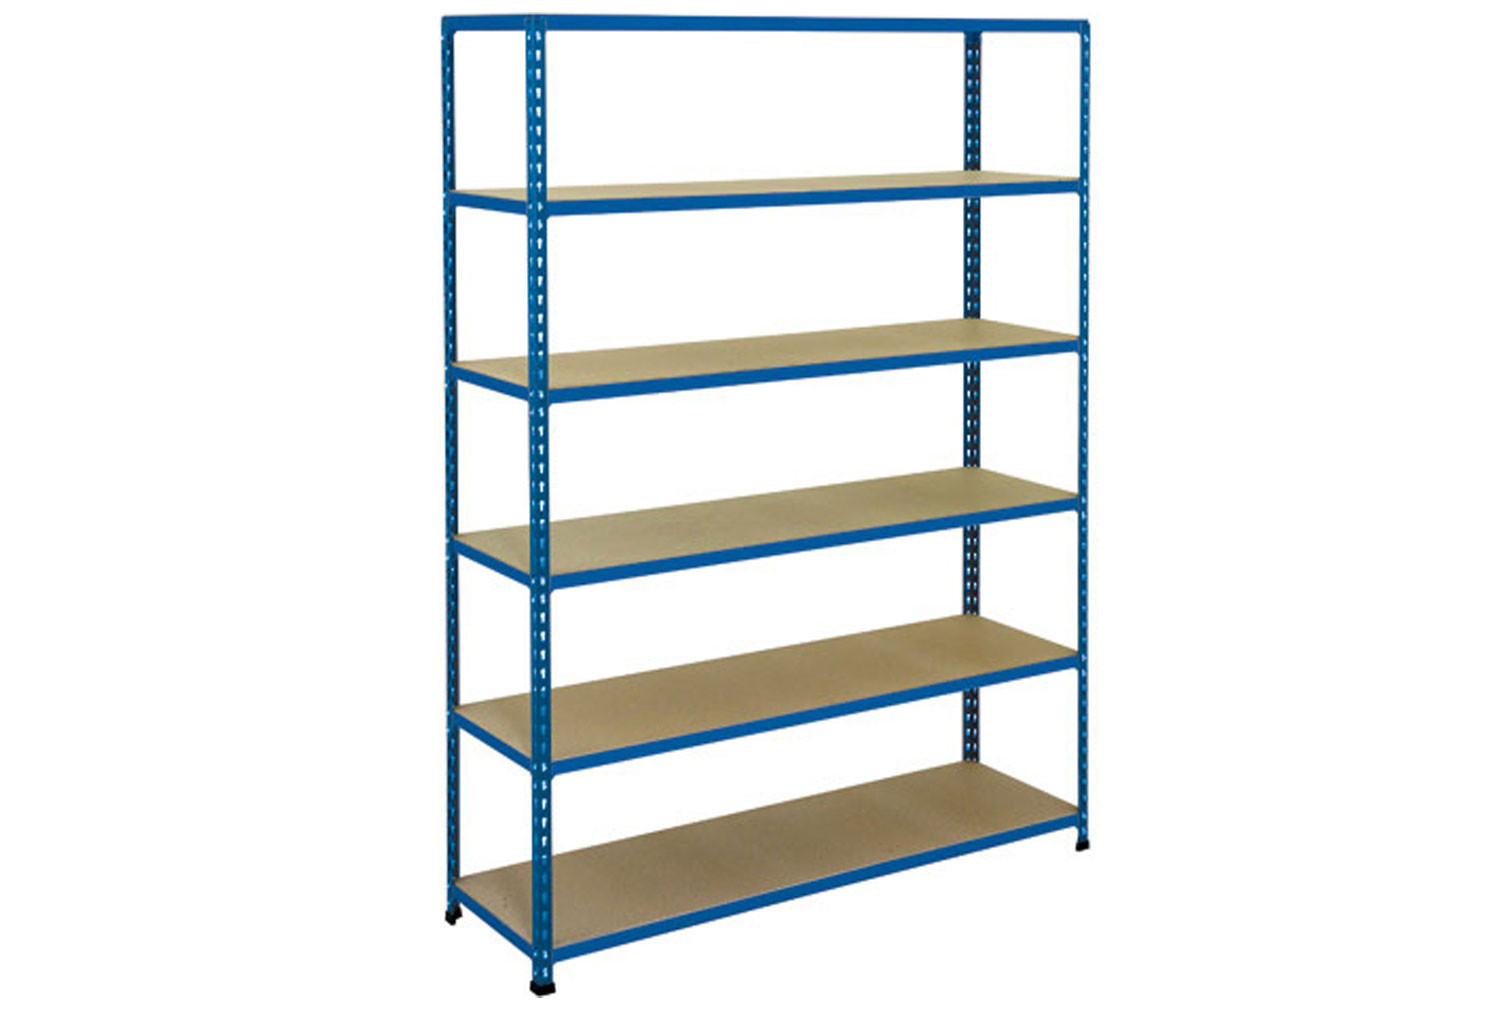 Rapid 2 Shelving With 6 Chipboard Shelves 1525wx1600h (Blue)